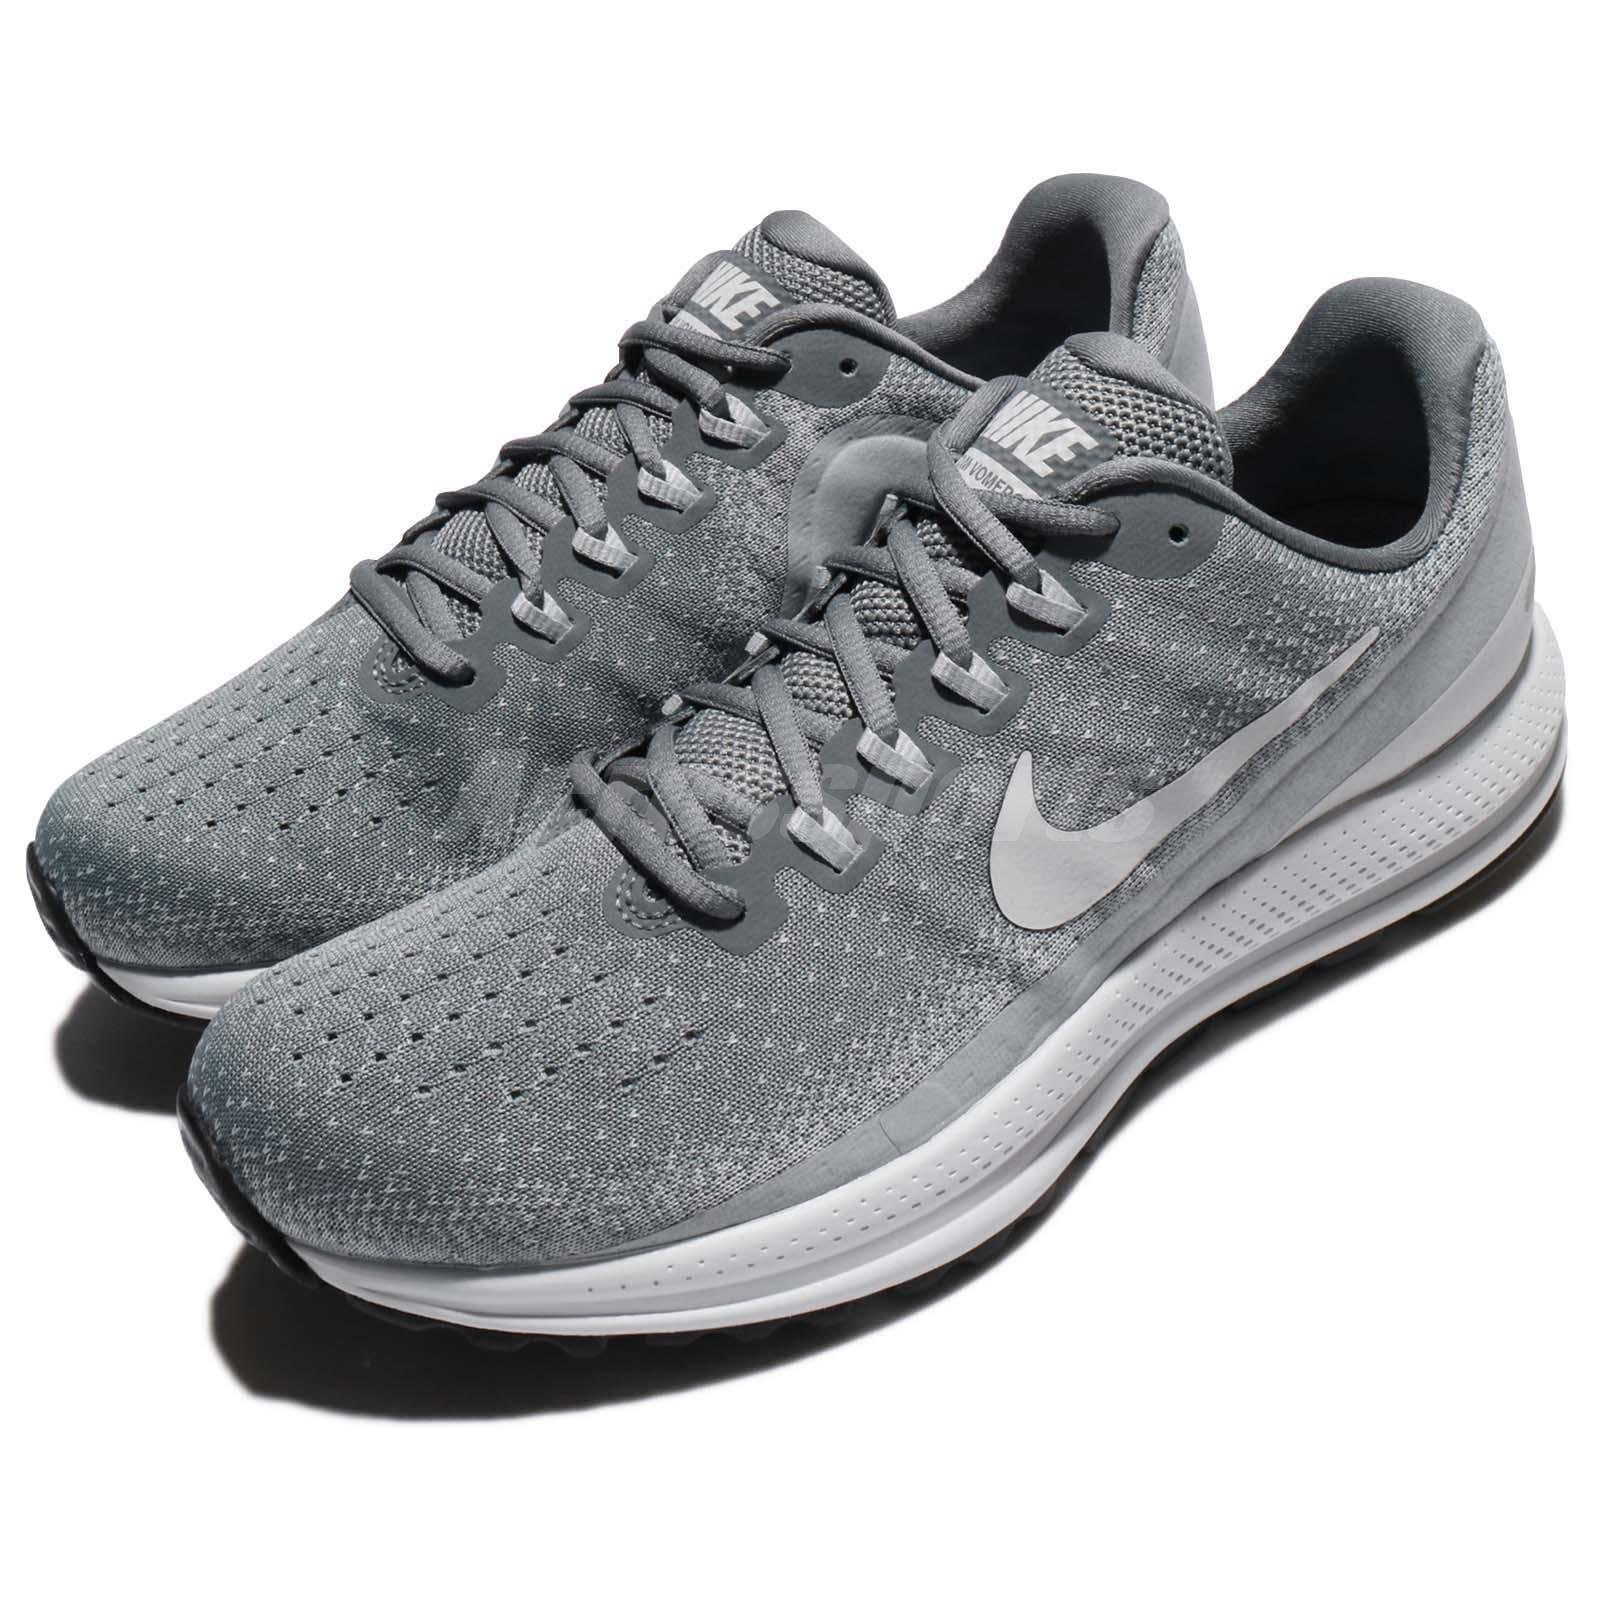 Nike Zoom Vomero 13 XIII Cool Air gris Hombres Running Zapatos TENIS 922908-003